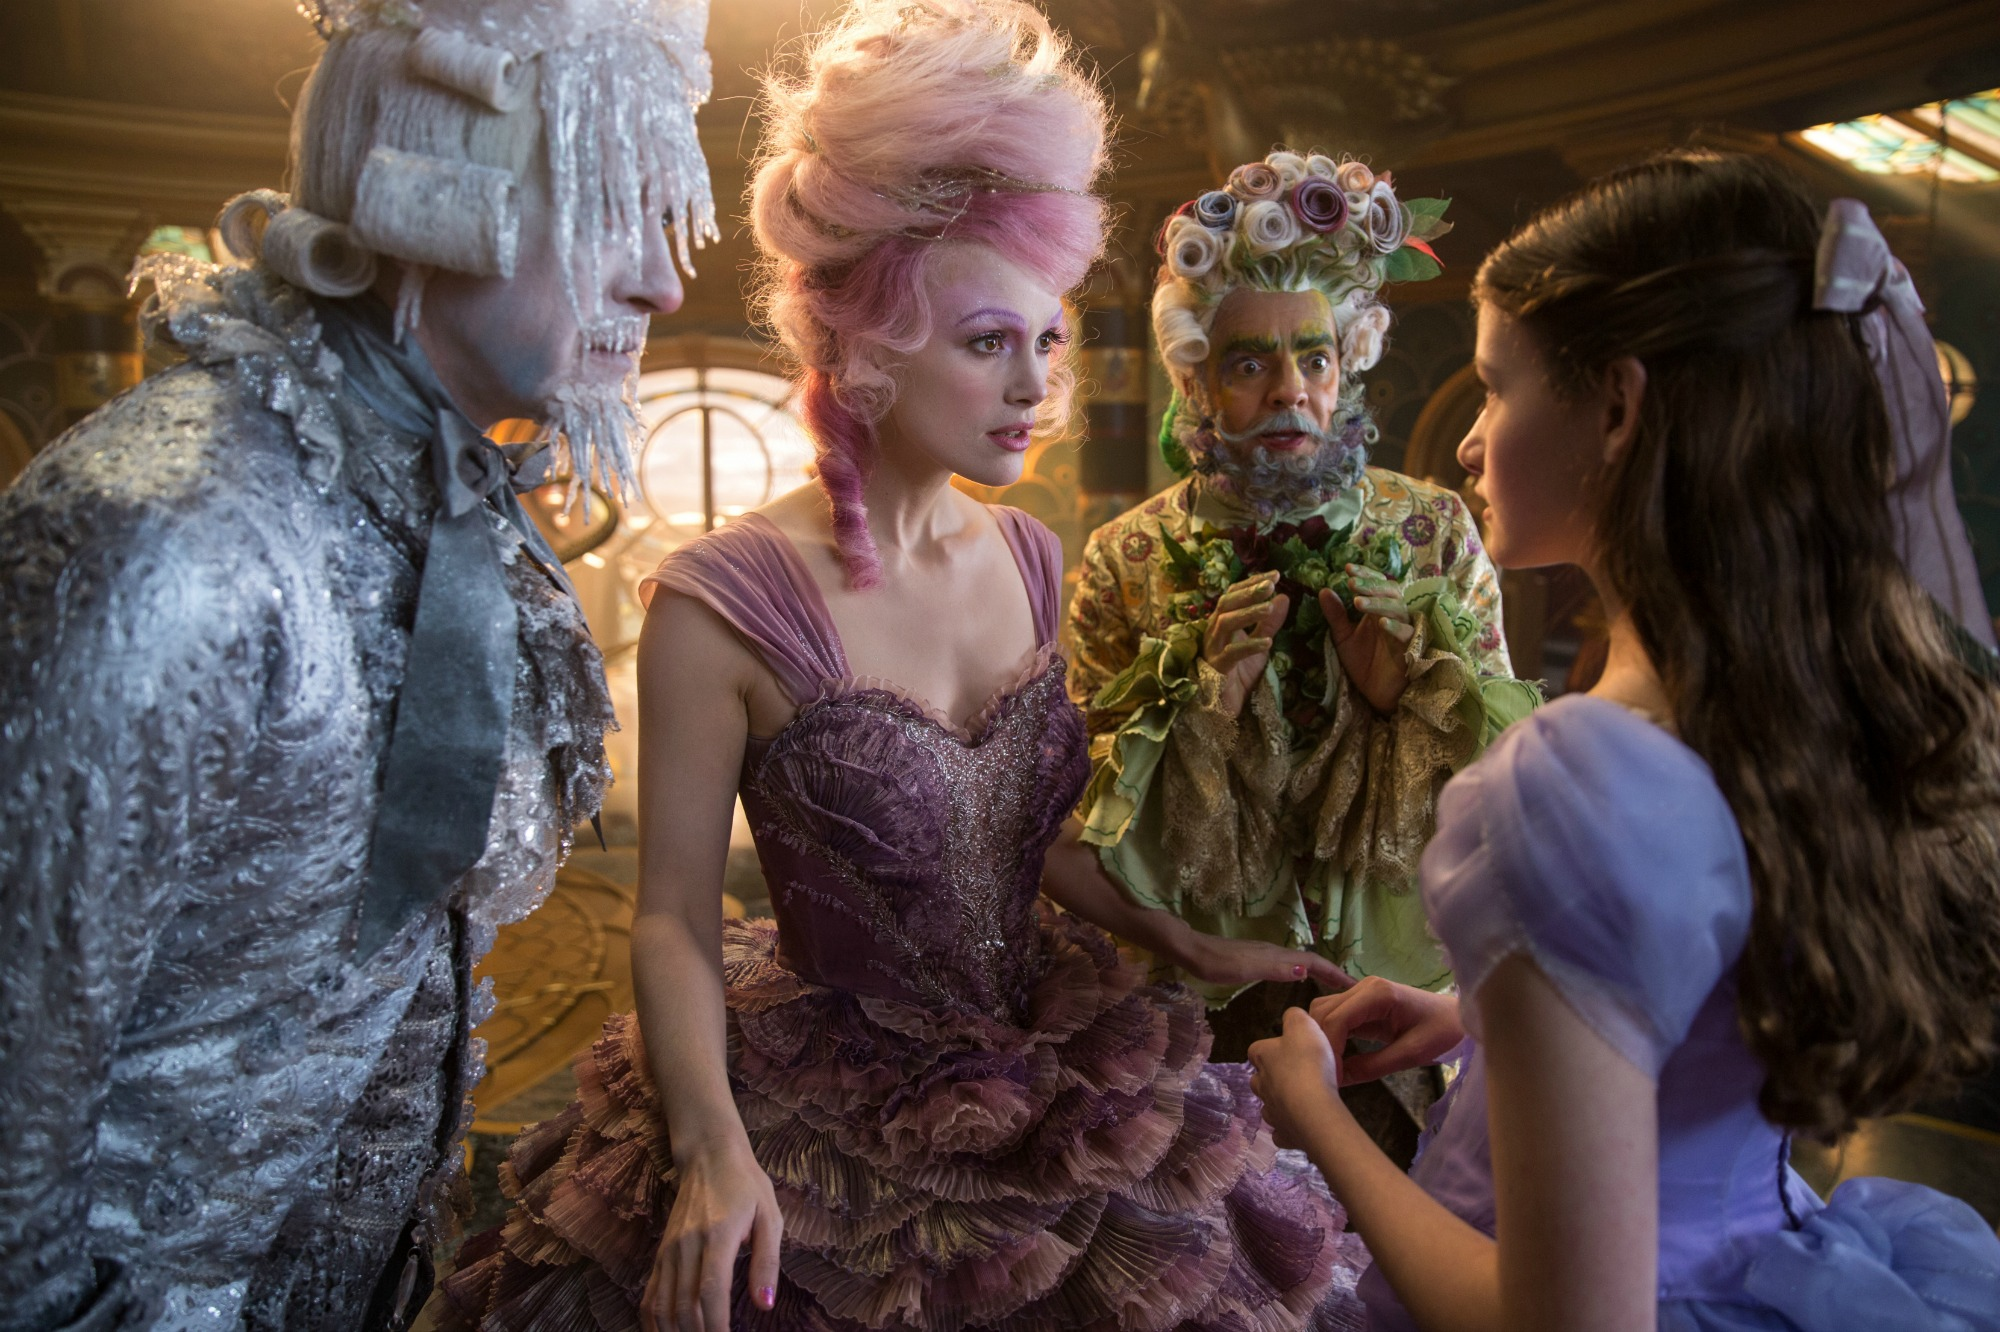 THE NUTCRACKER AND THE FOUR REALMS opens November 2nd